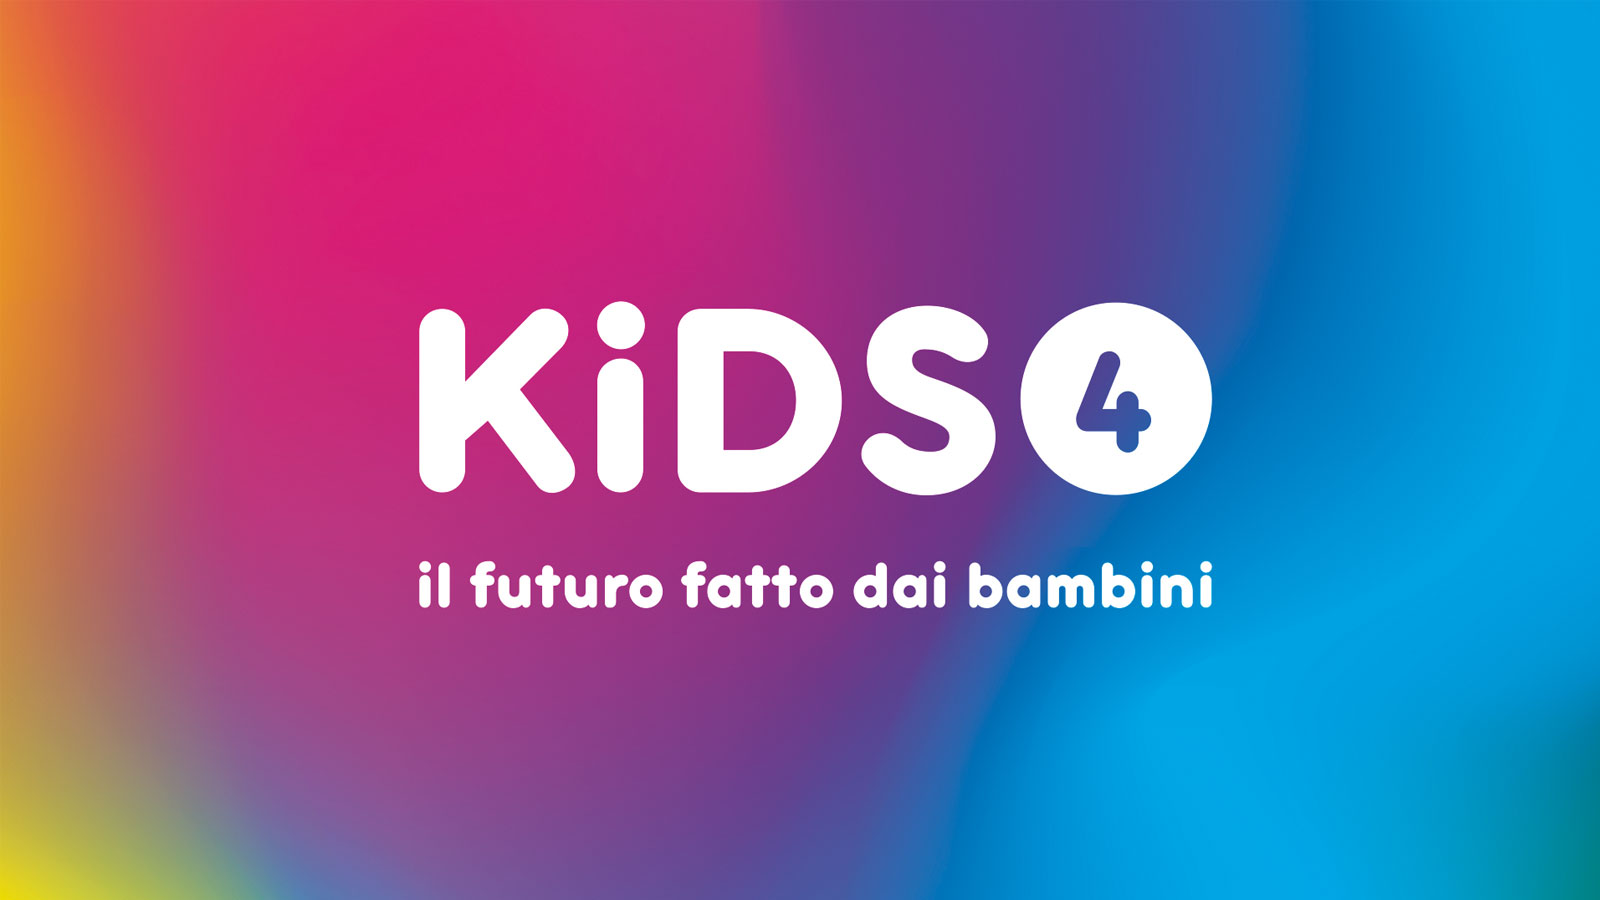 KiDS4 videos for children about climate change - video per bambini sui cambiamenti cliamtici.